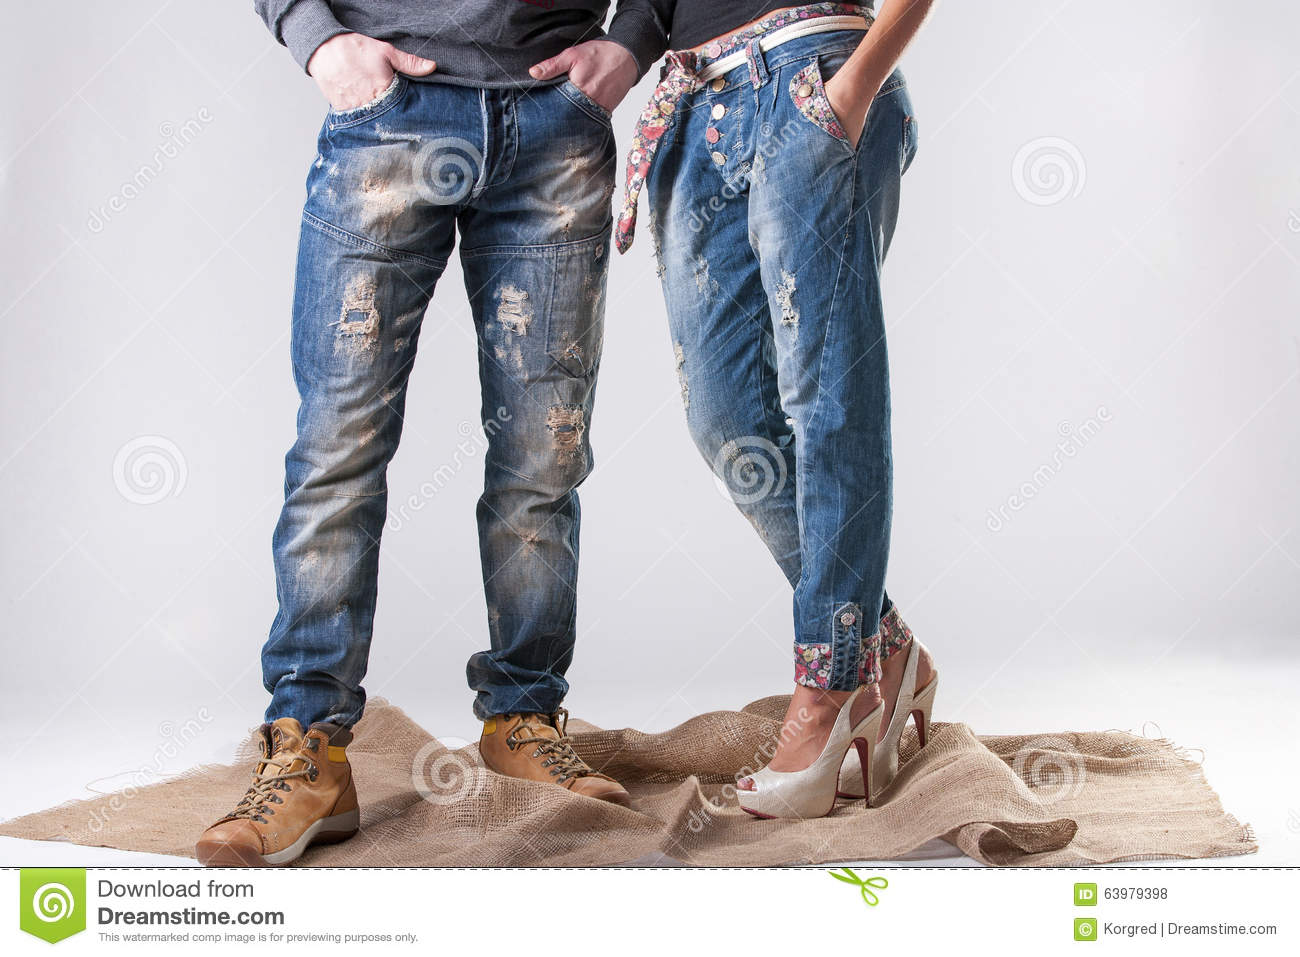 Man And Woman In Stylish Jeans Stock Photo - Image: 63979398